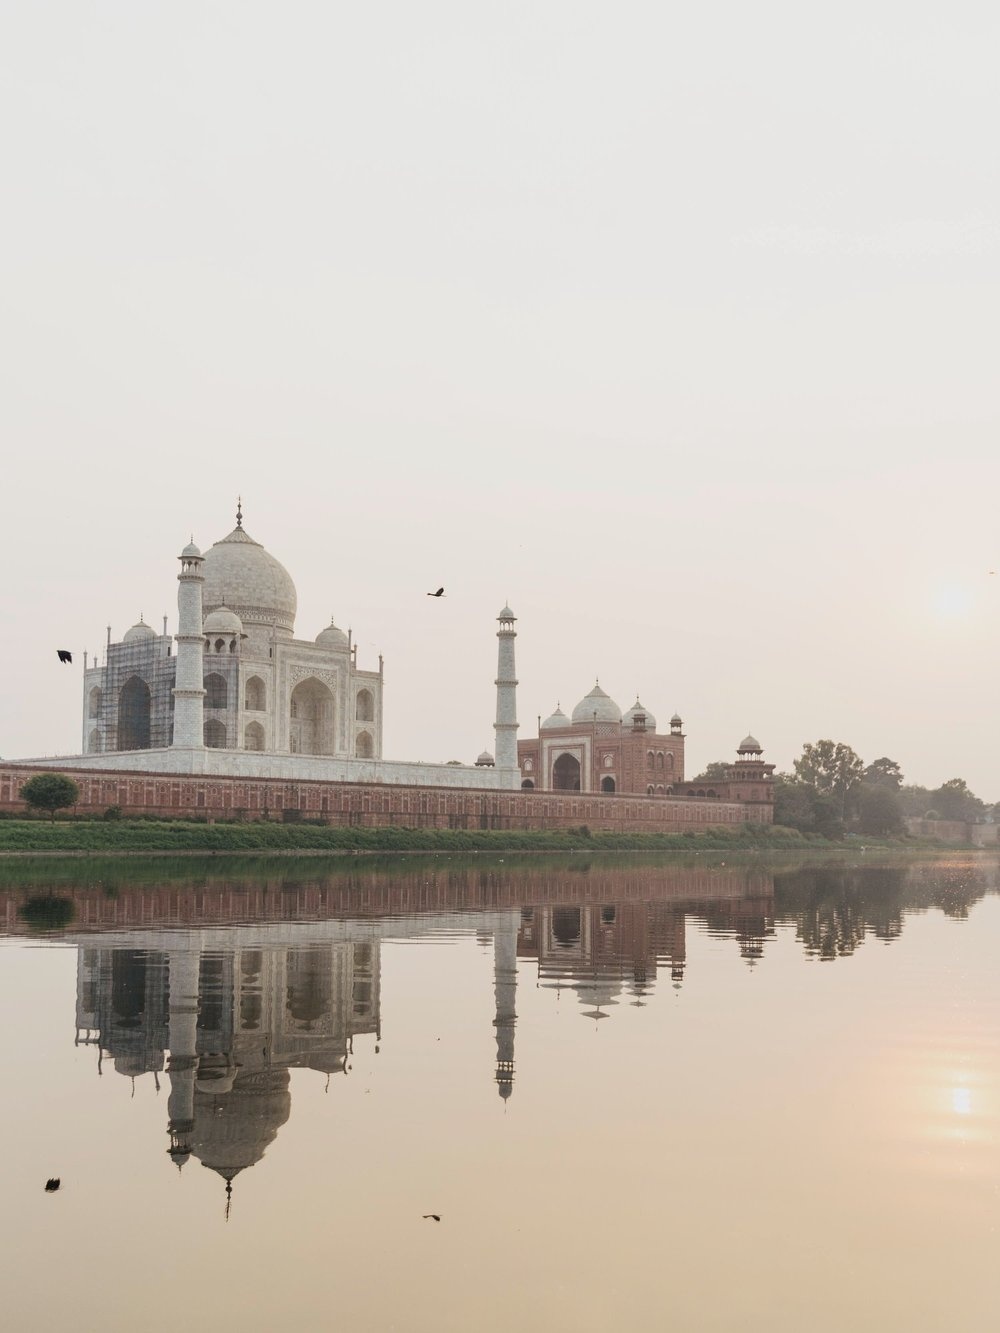 taj-mahal-agra-yamuna-river-travel